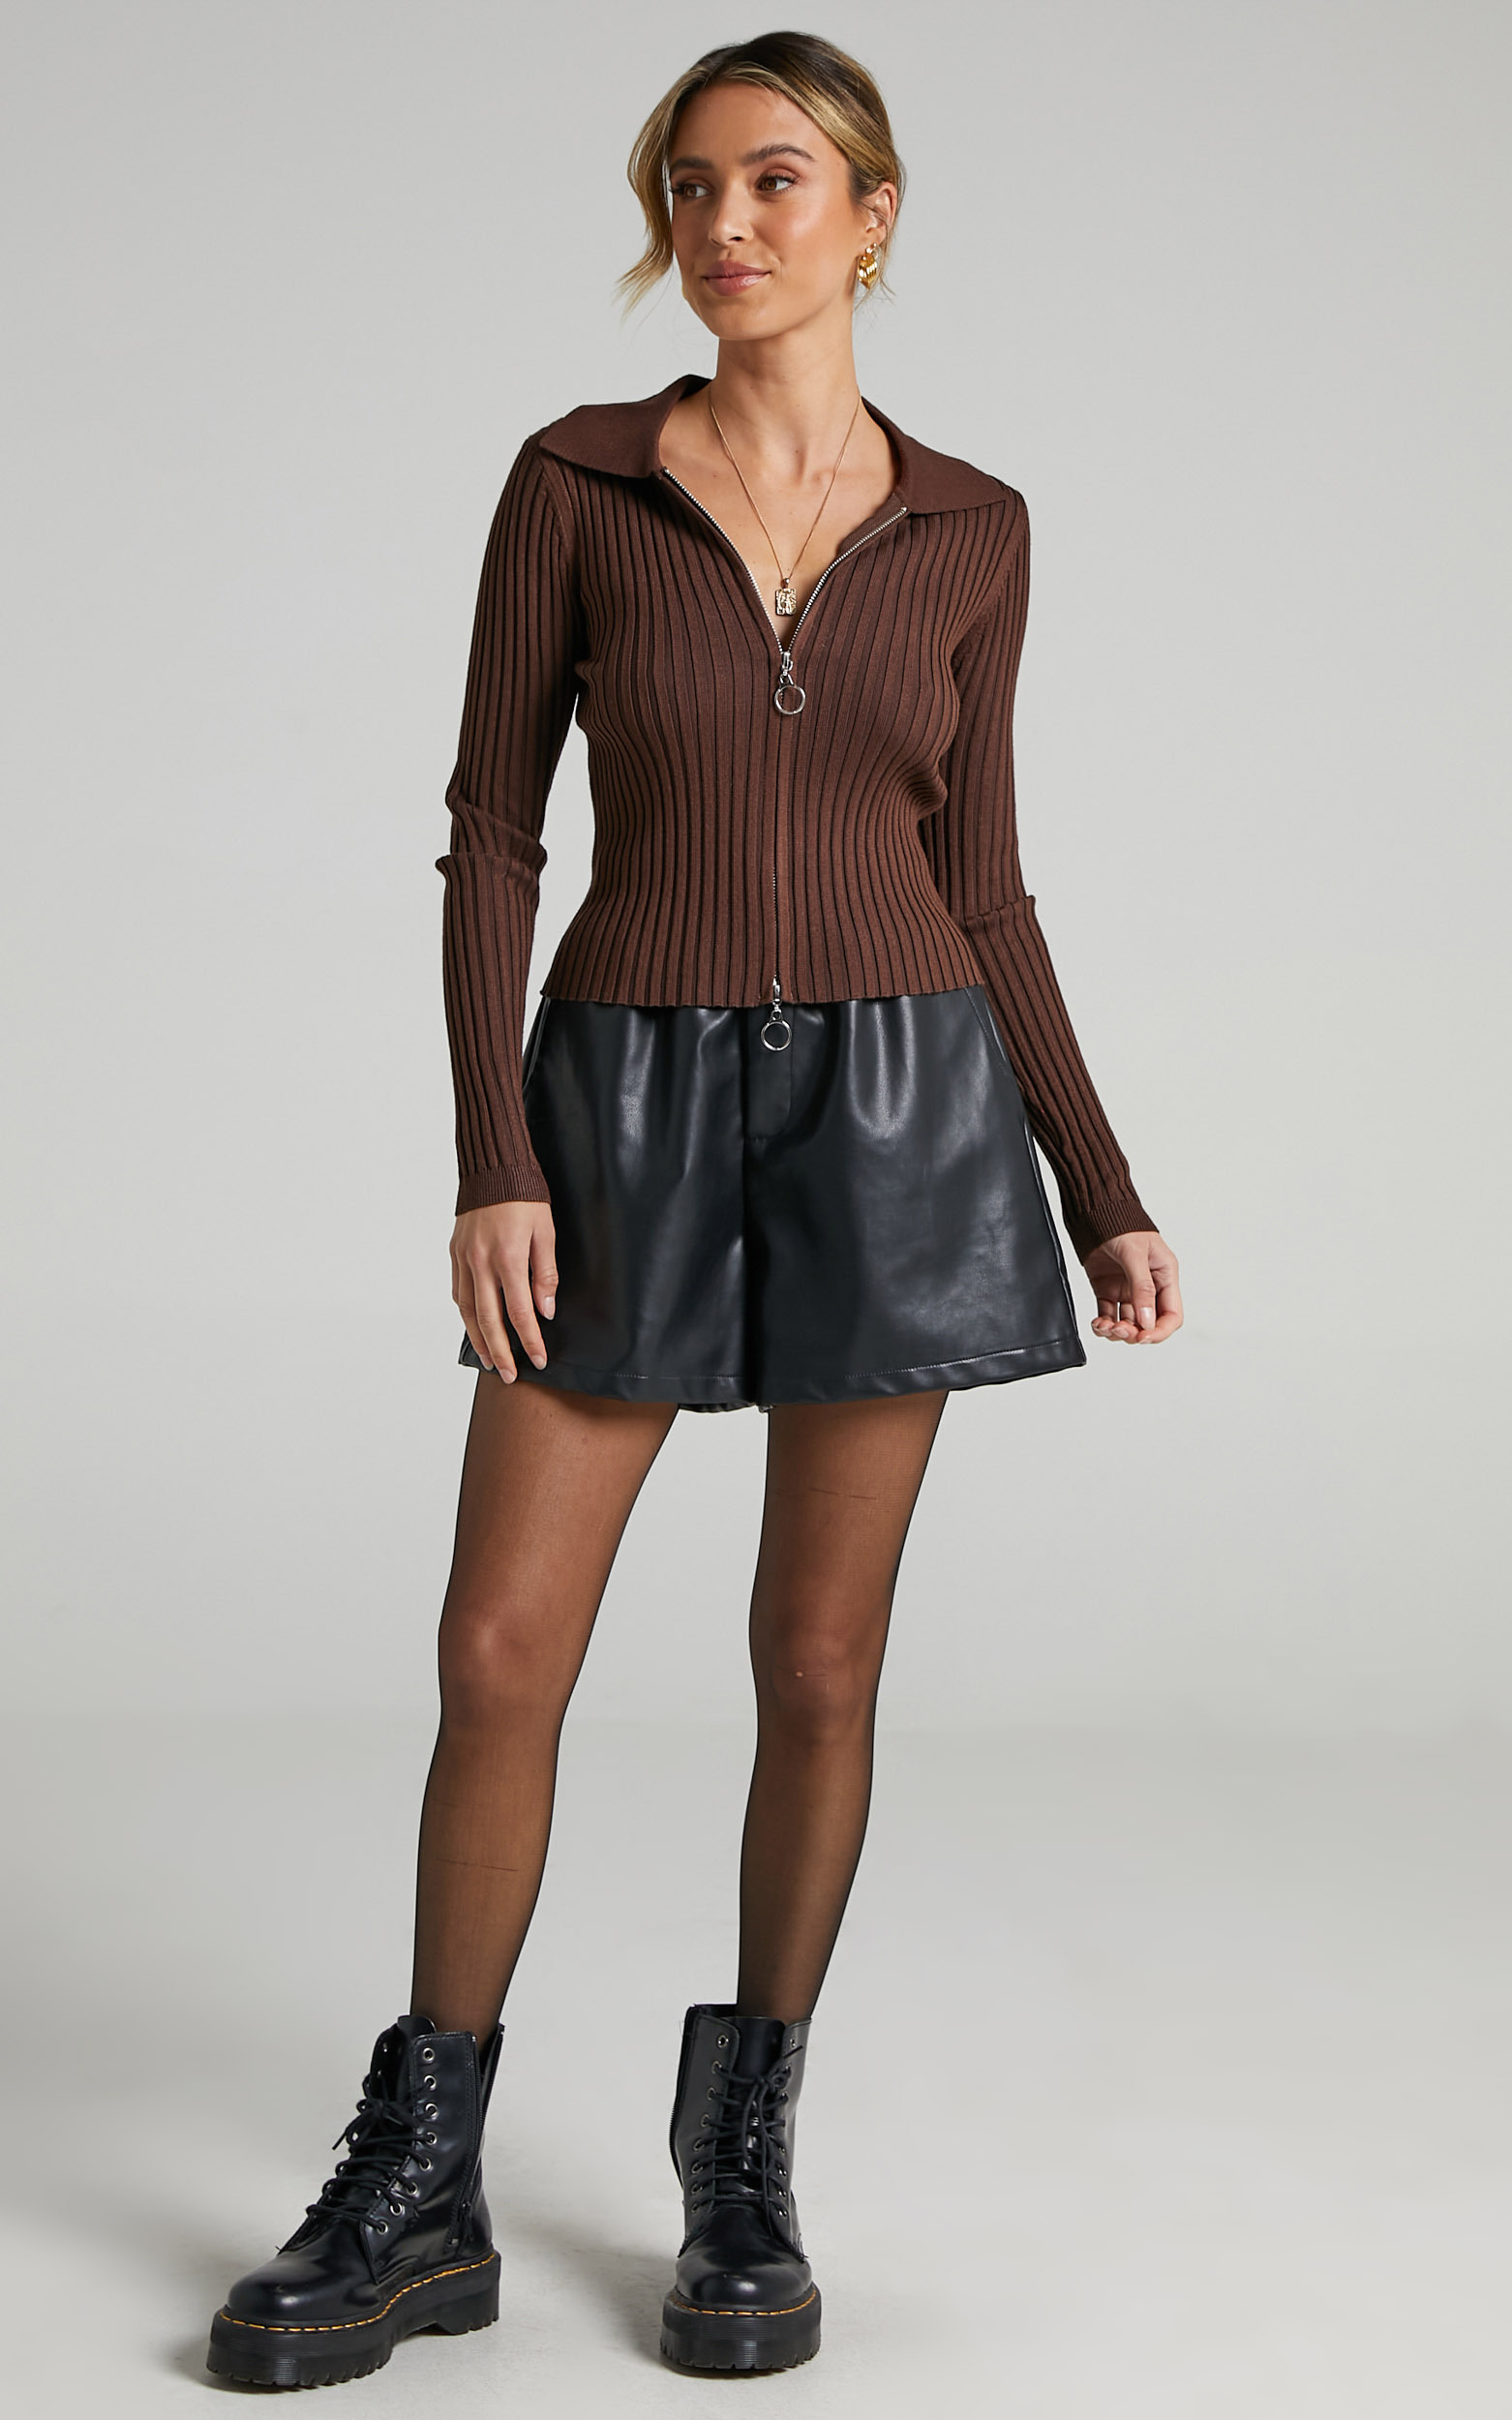 Tosia Cardigan in Chocolate - 06, BRN2, hi-res image number null